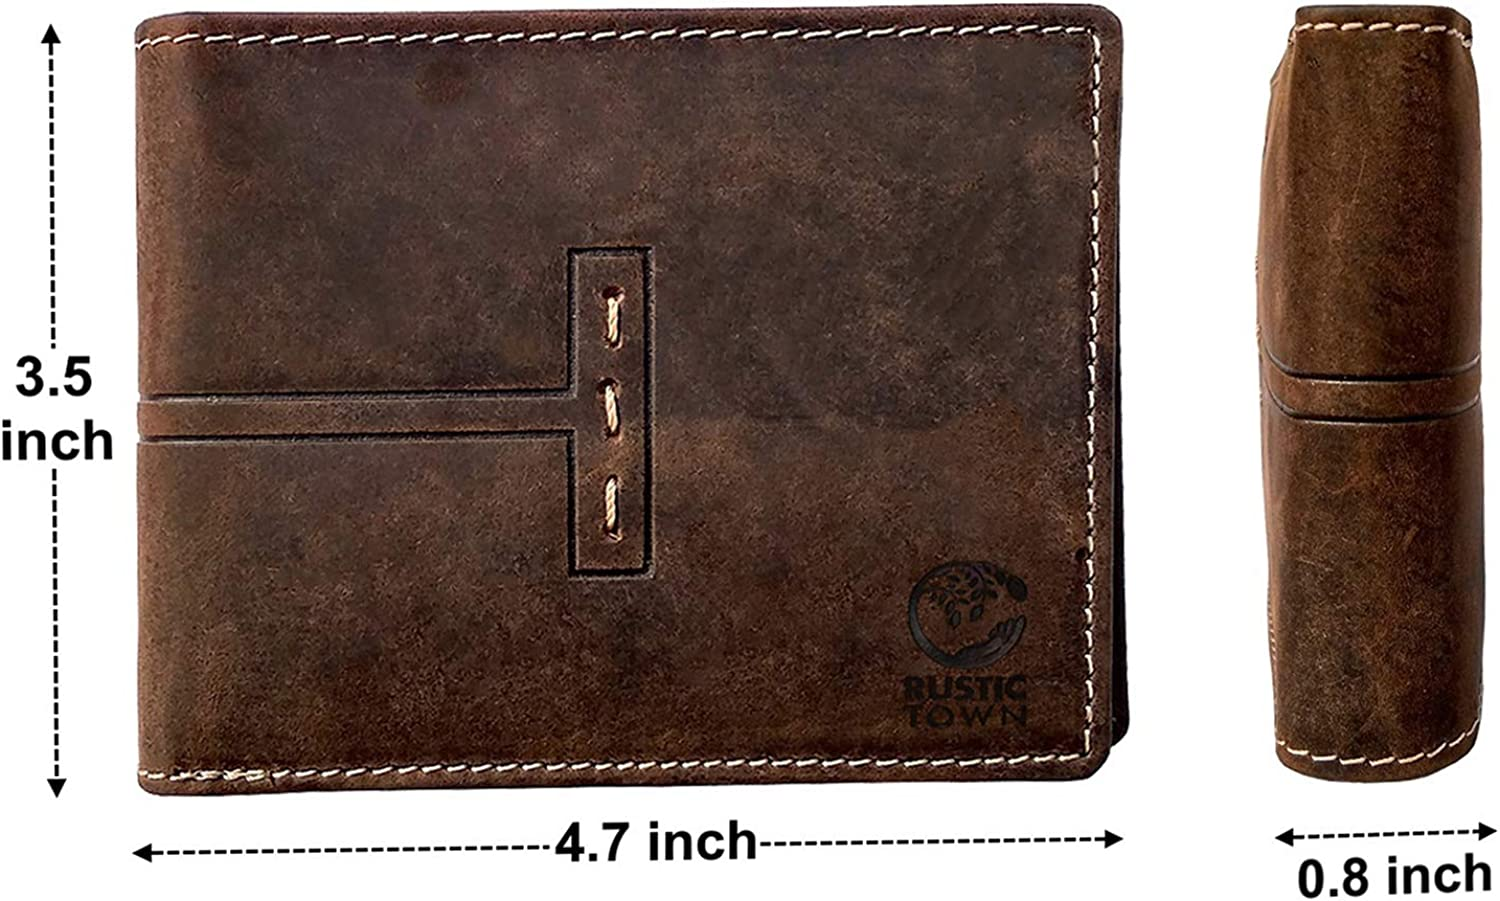 Hand stitched Leather Wallet \u2022 Leather Bifold Wallet in Rustic Soft Brown leather \u2022 Men/'s Leather Wallet \u2022 folding wallet